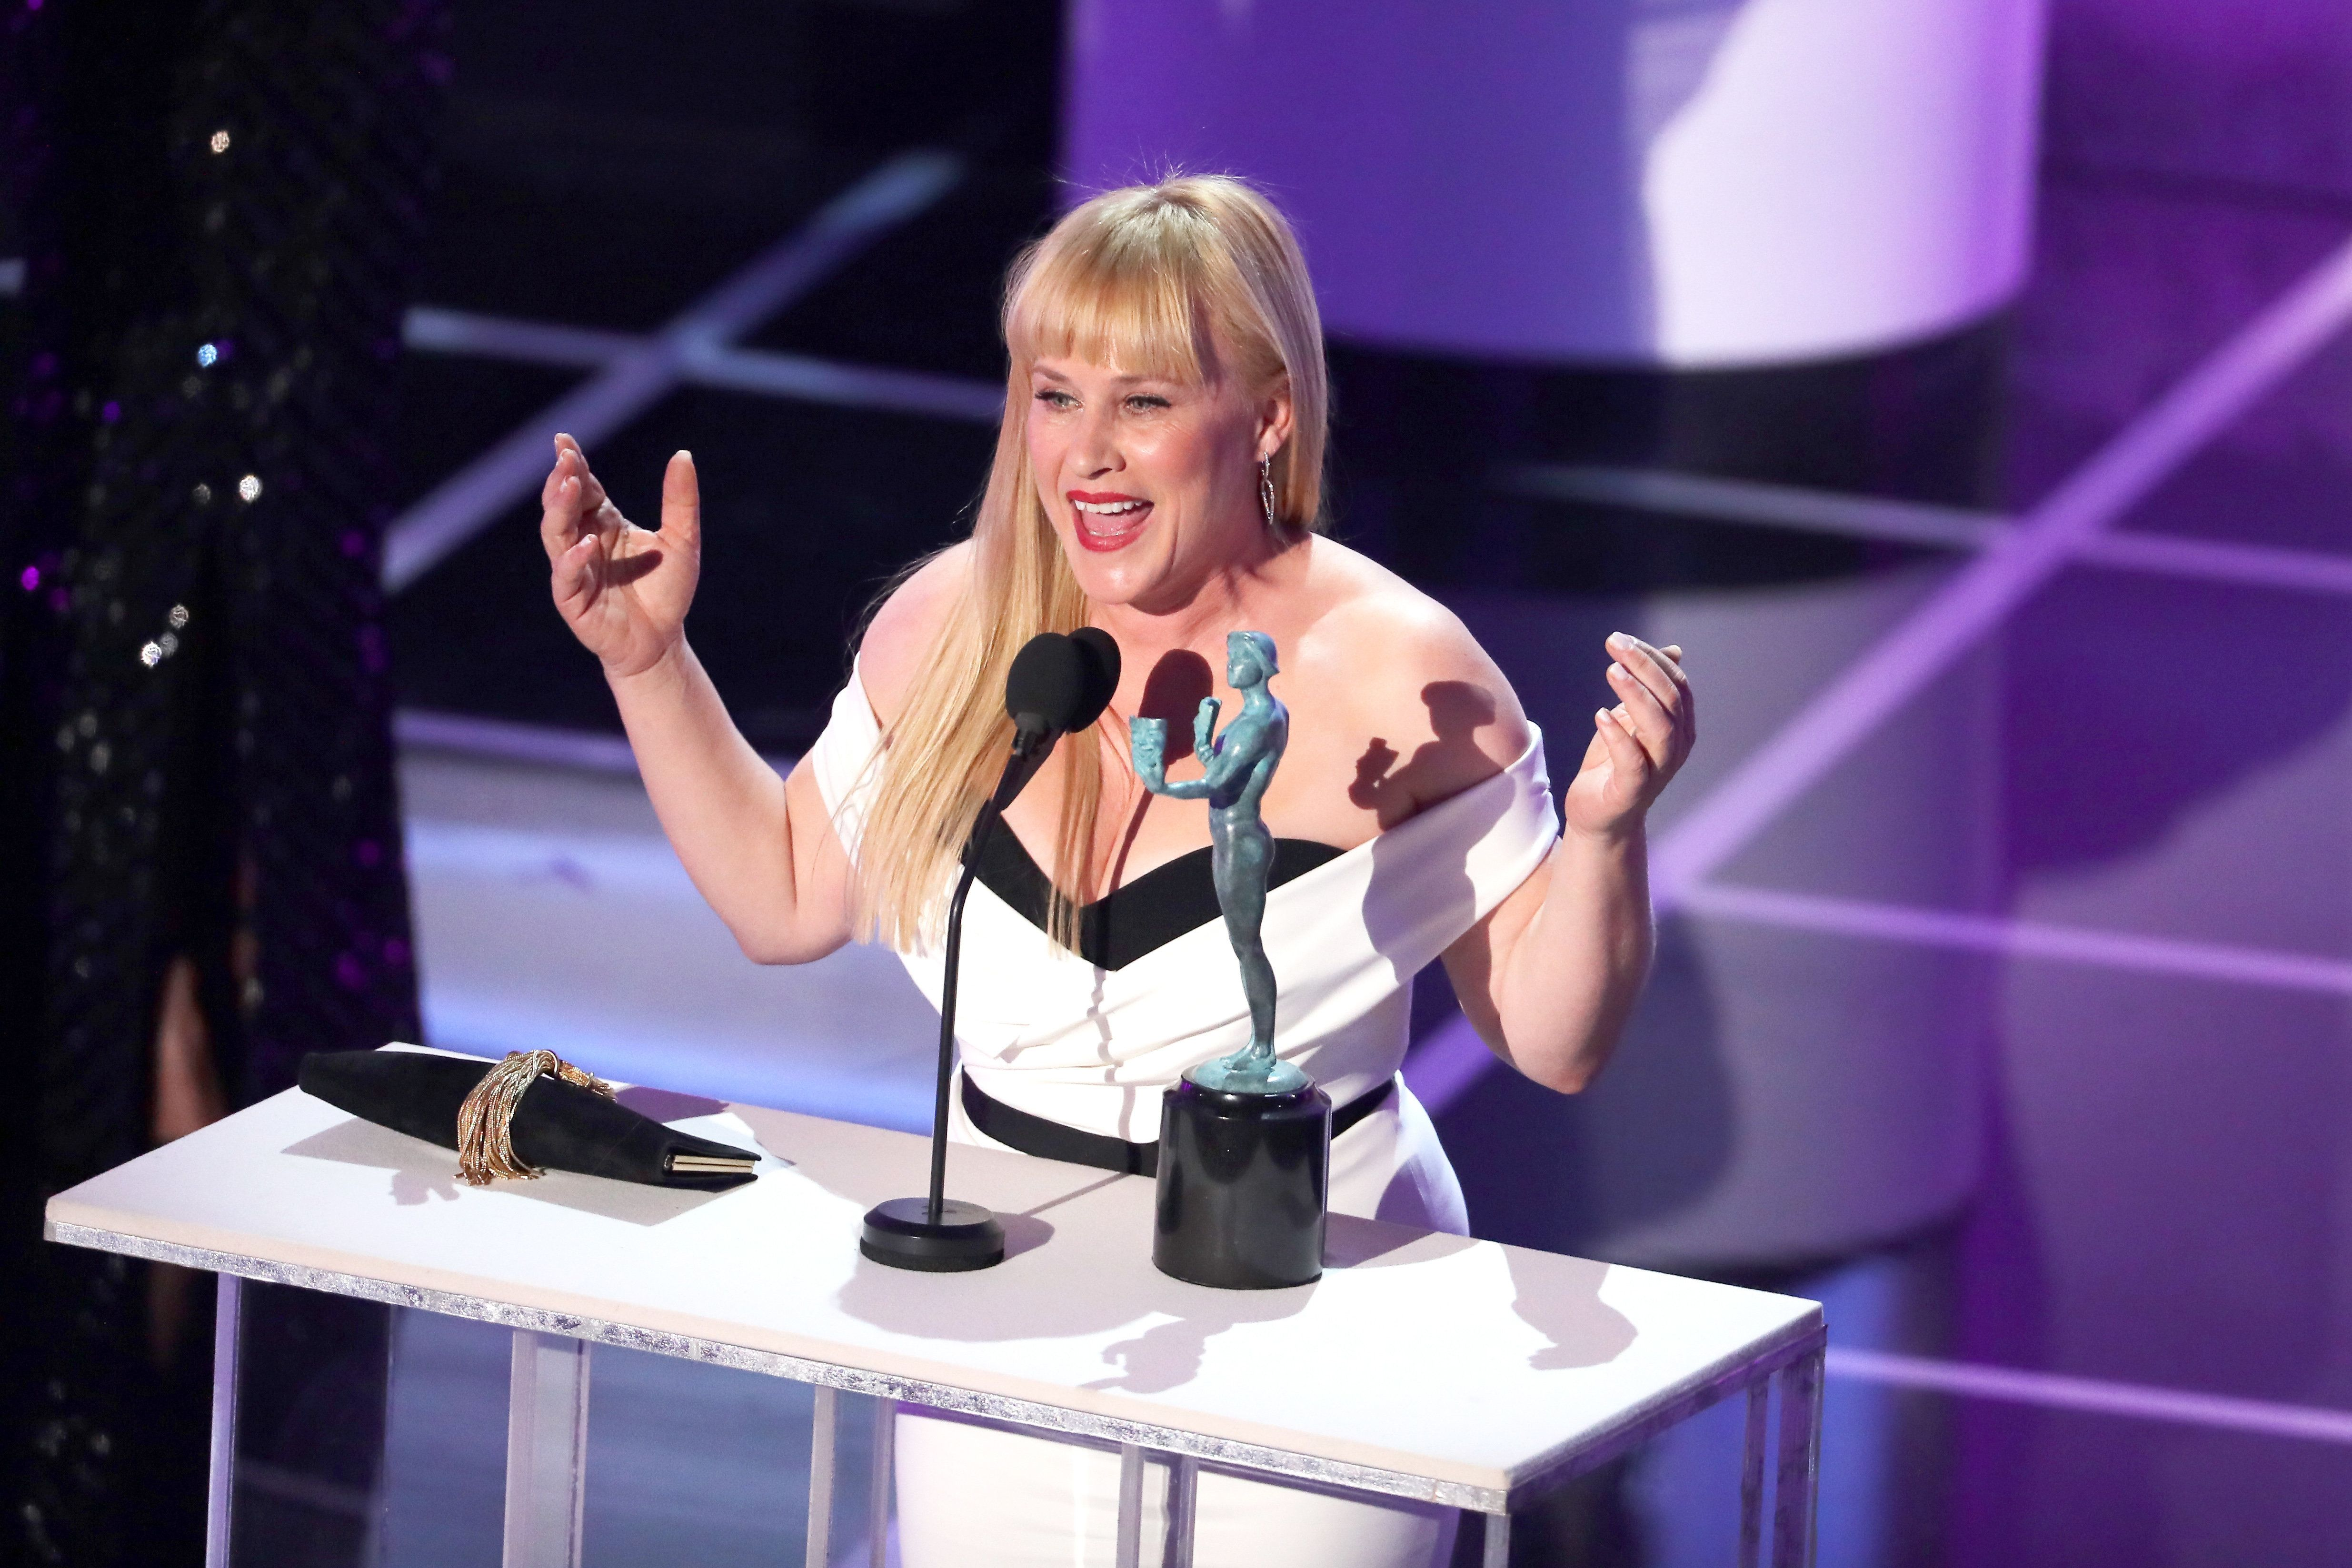 LOS ANGELES, CA - JANUARY 27:  Patricia Arquette onstage during the 25th Annual Screen ActorsGuild Awards at The Shrine Auditorium on January 27, 2019 in Los Angeles, California. 480468  (Photo by Richard Heathcote/Getty Images for Turner)